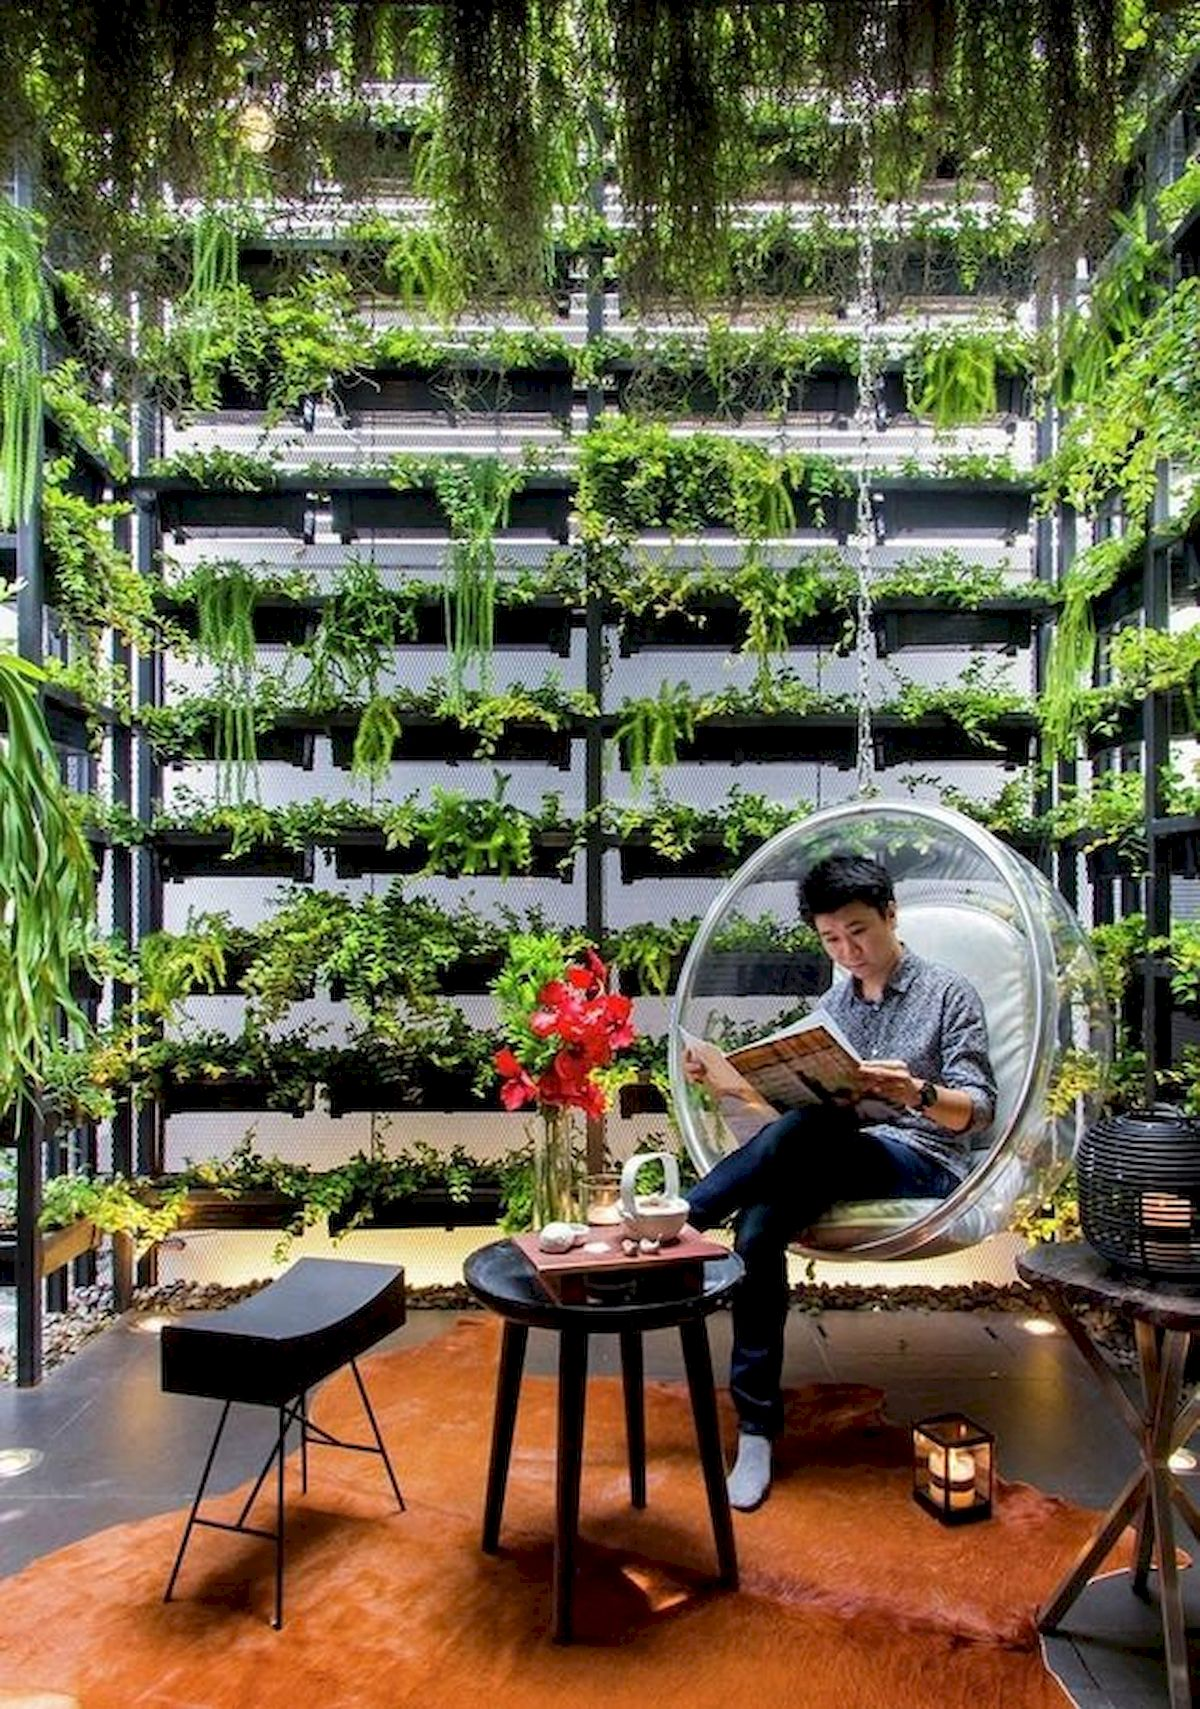 44 Creative DIY Vertical Garden Ideas To Make Your Home Beautiful (6)